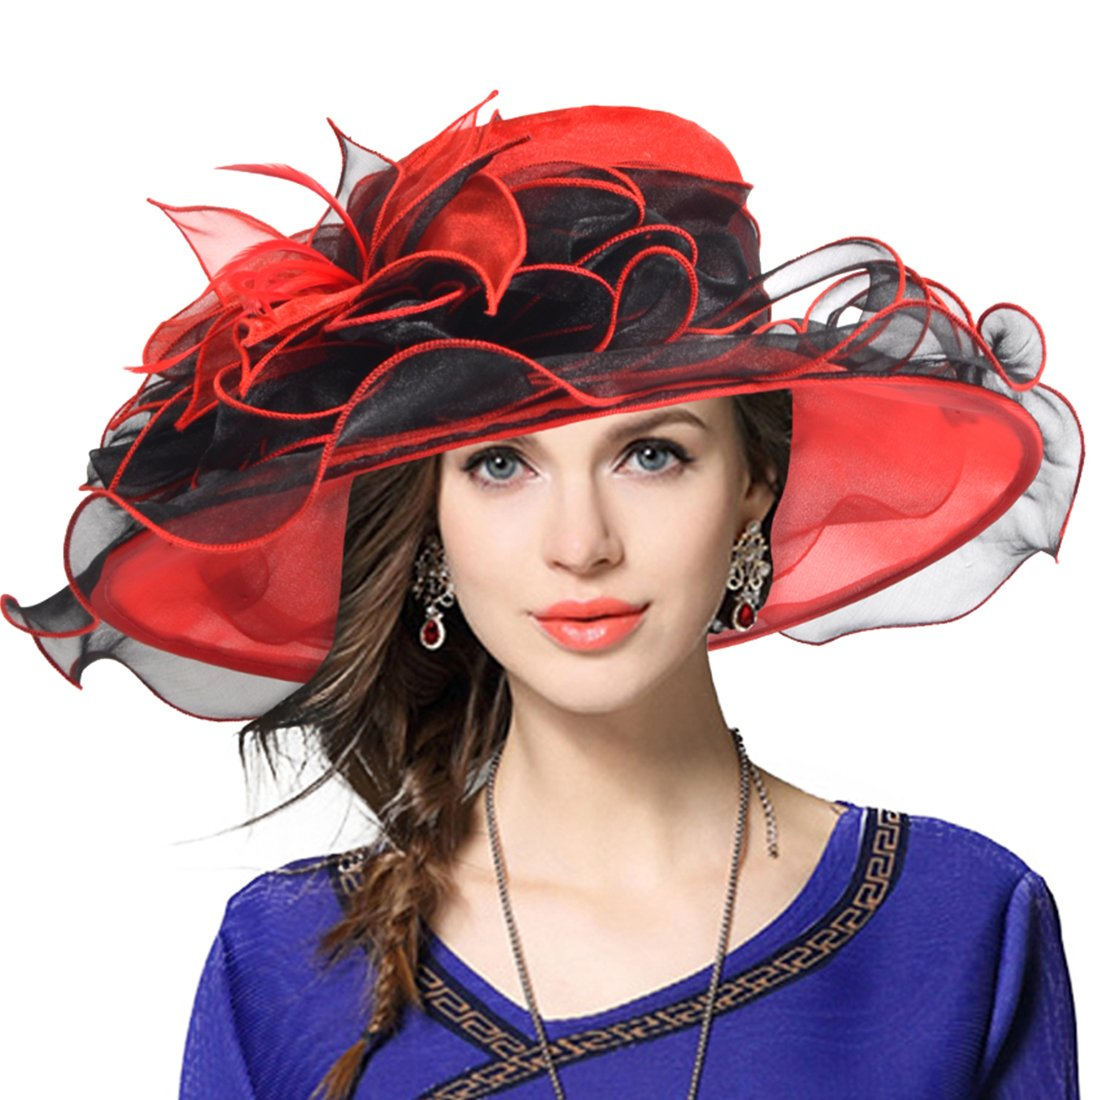 JESSE · RENA Women's Church Derby Dress Fascinator Bridal Cap British Tea Party Wedding Hat (Two-Tone-Red, M) by JESSE · RENA